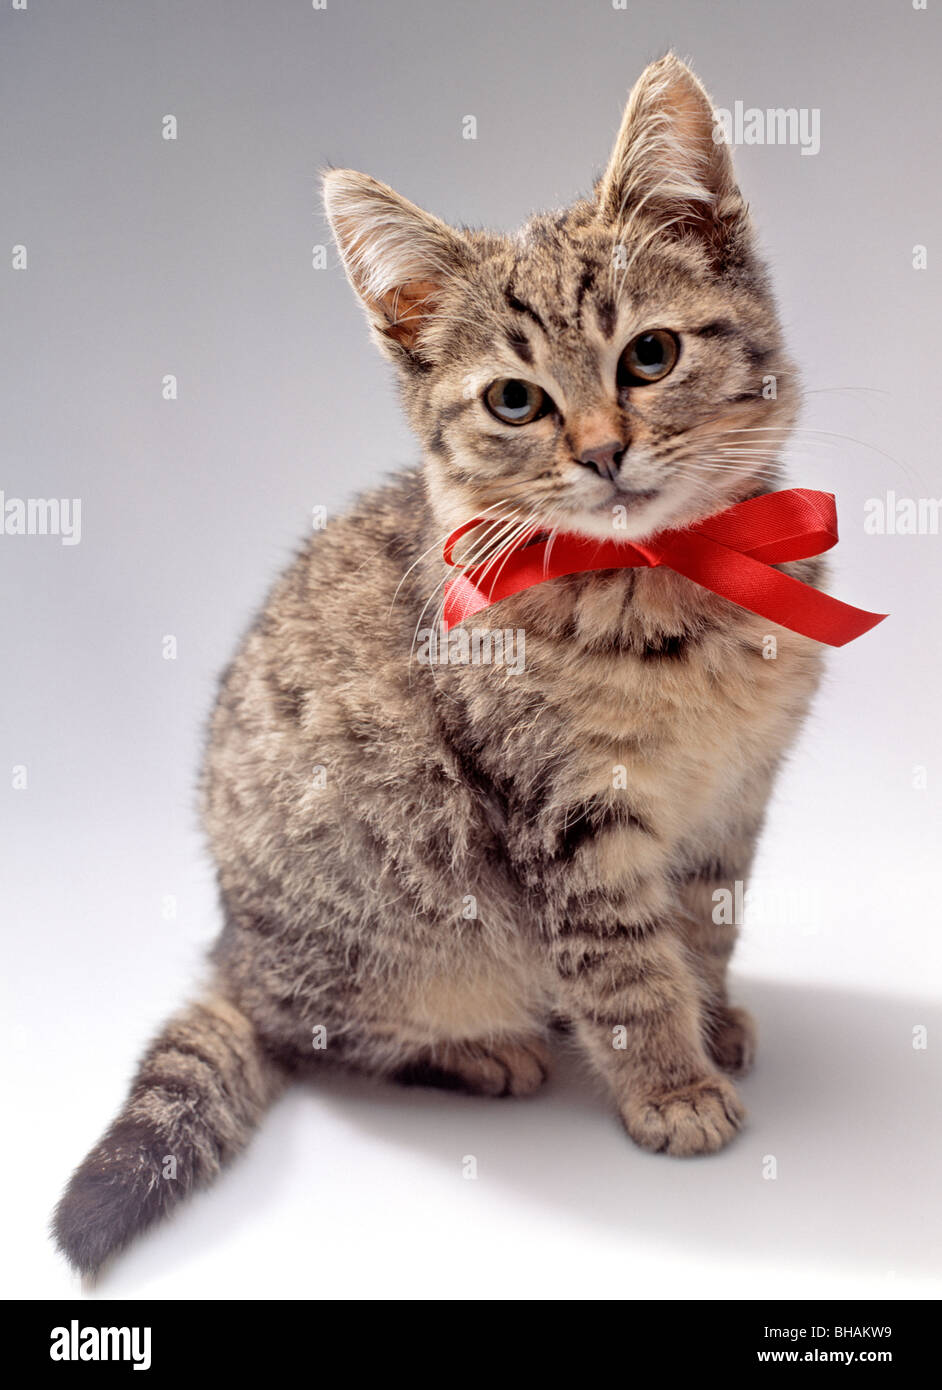 Kitten with red bow - Stock Image